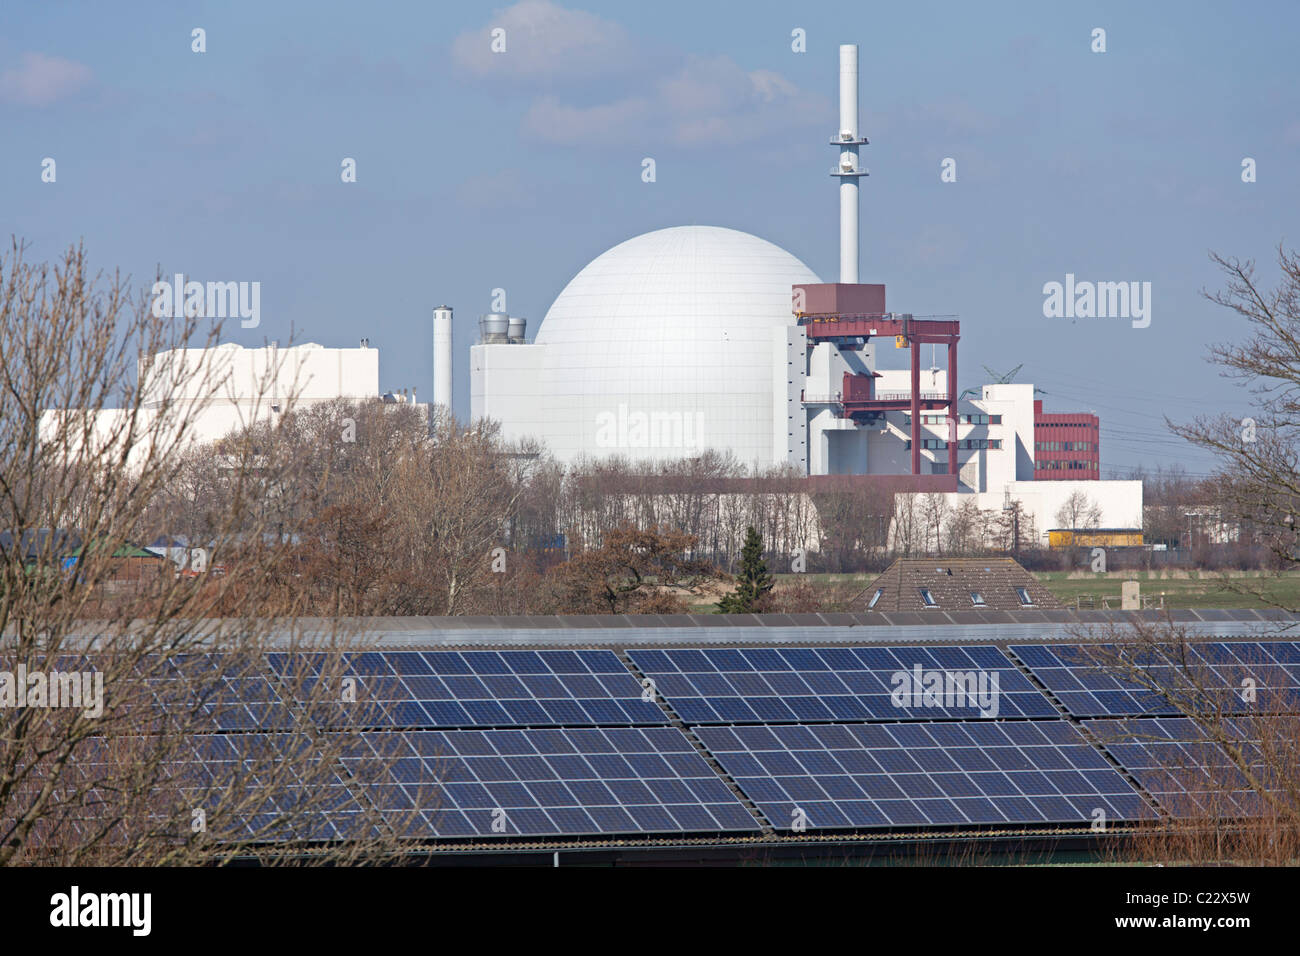 nuclear power station and solar power plant, Brokdorf, Schleswig-Holstein, Germany Stock Photo